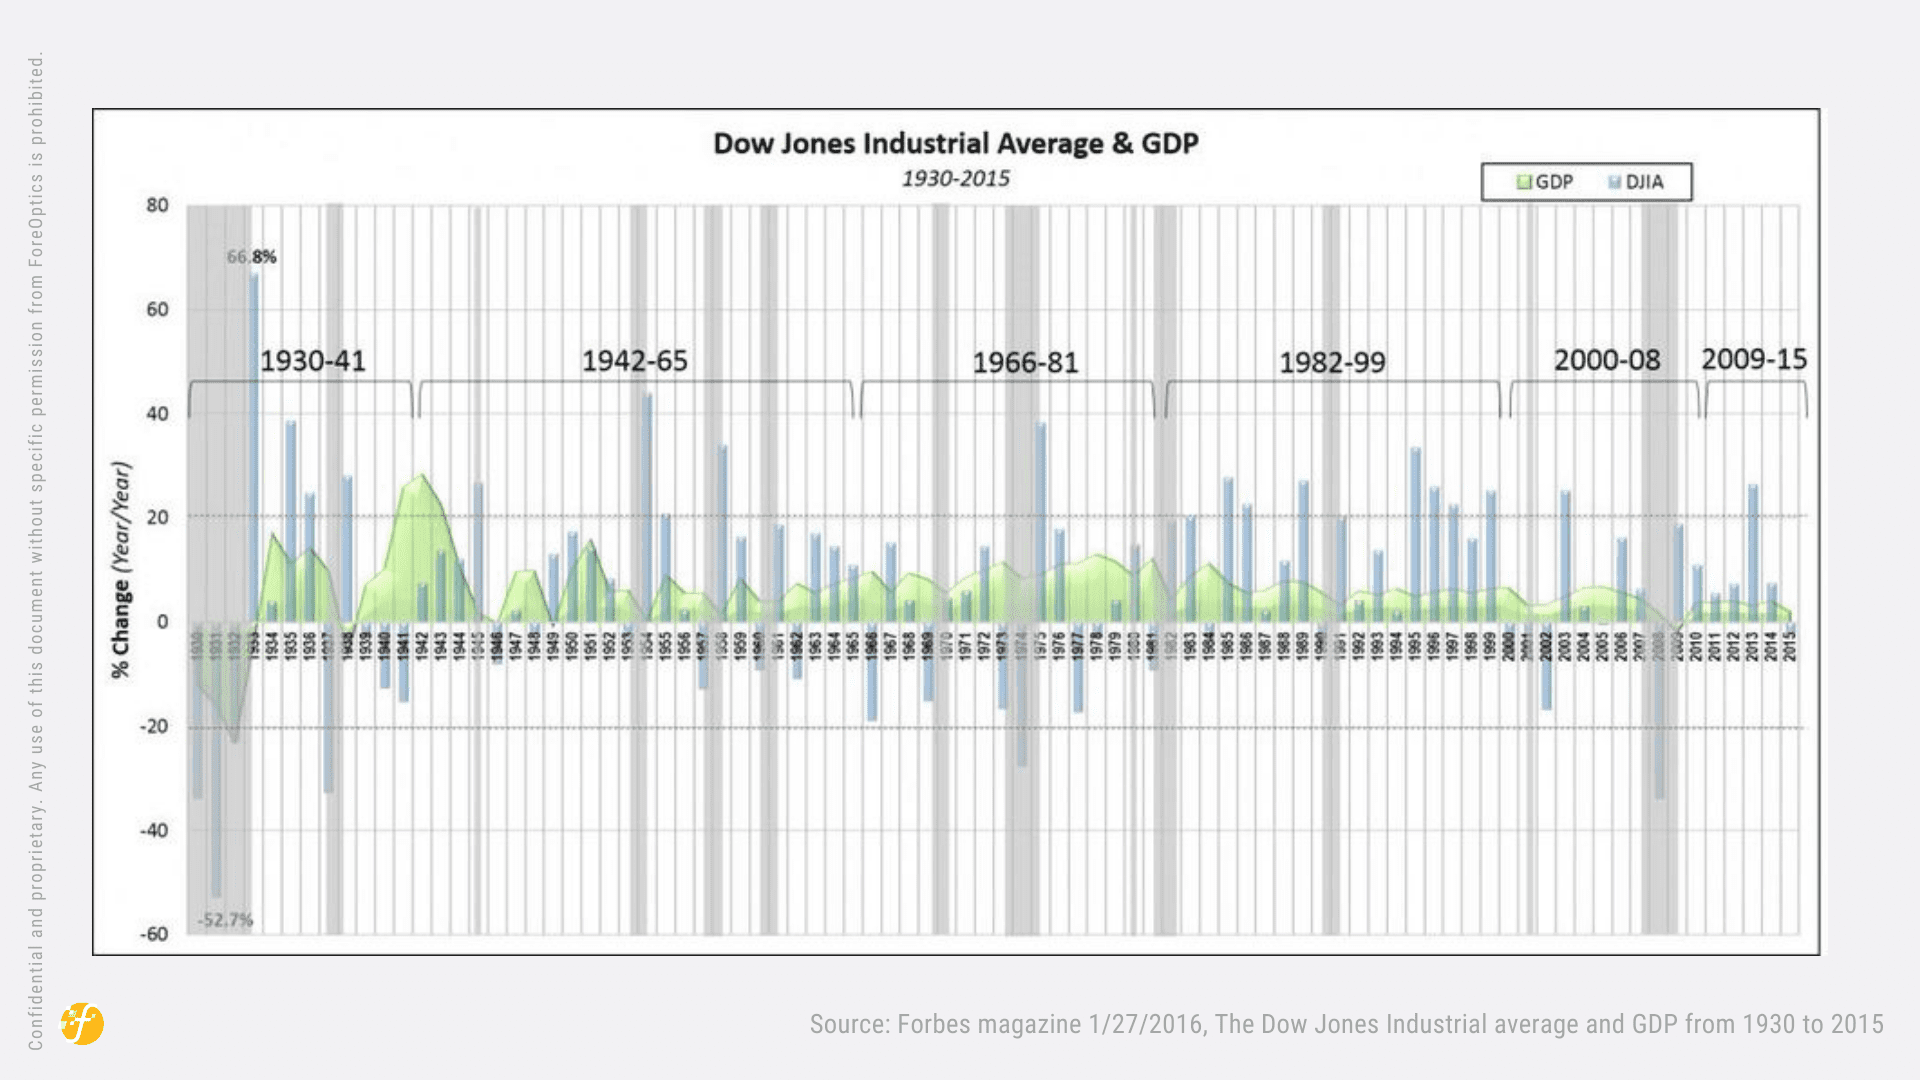 Forbes magazine 1/27/2016, The Dow Jones Industrial average and GDP from 1930 to 2015